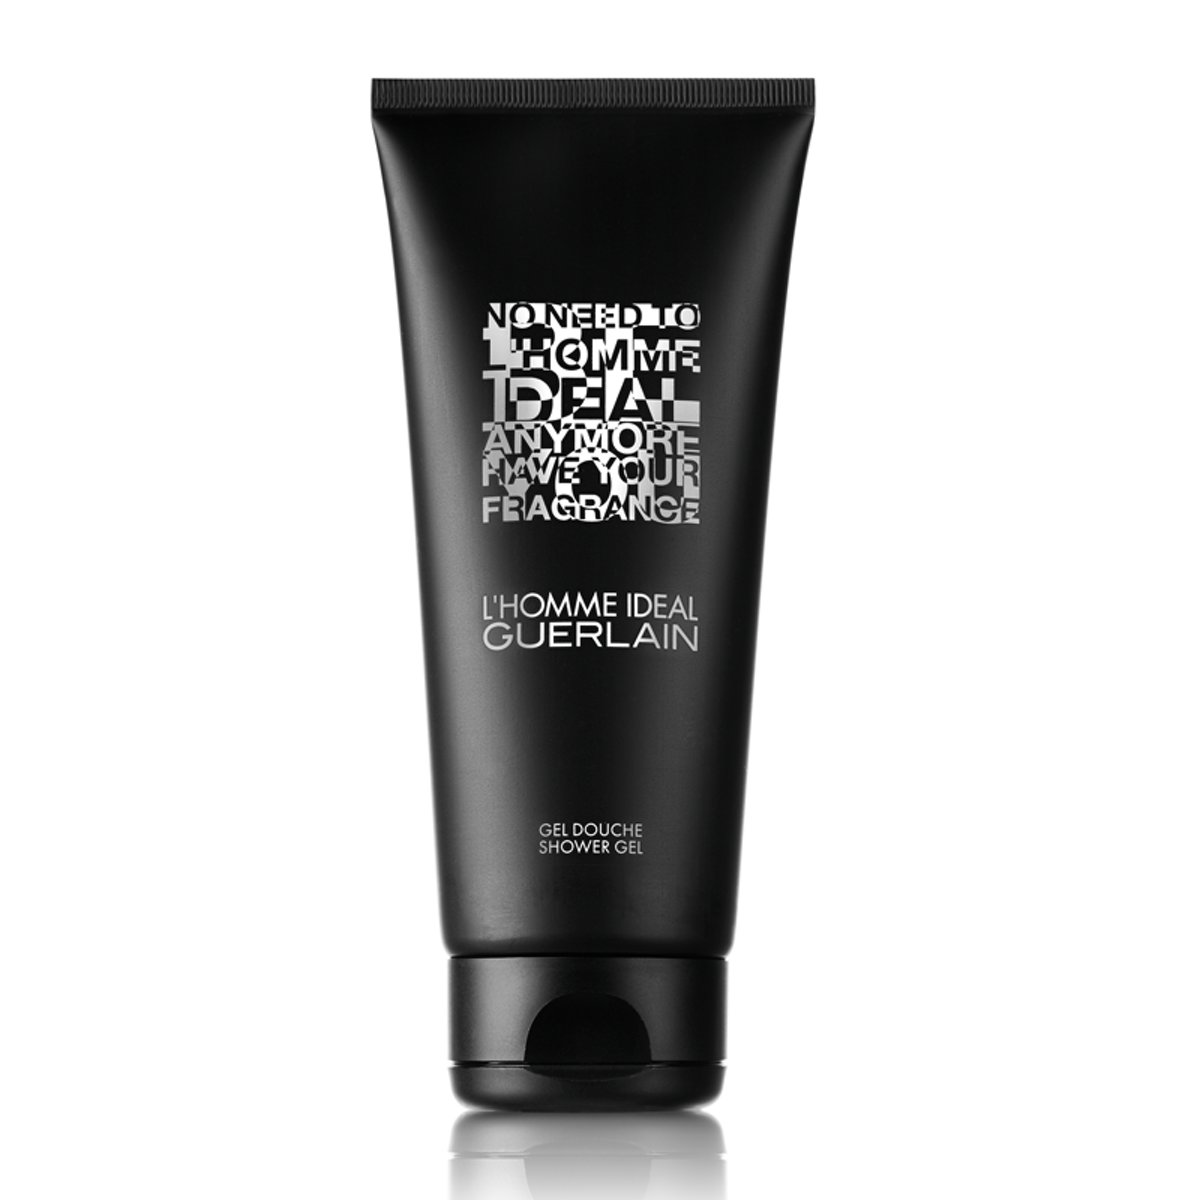 Guerlain LHomme Ideal Showergel - 200 ml - Douchegel